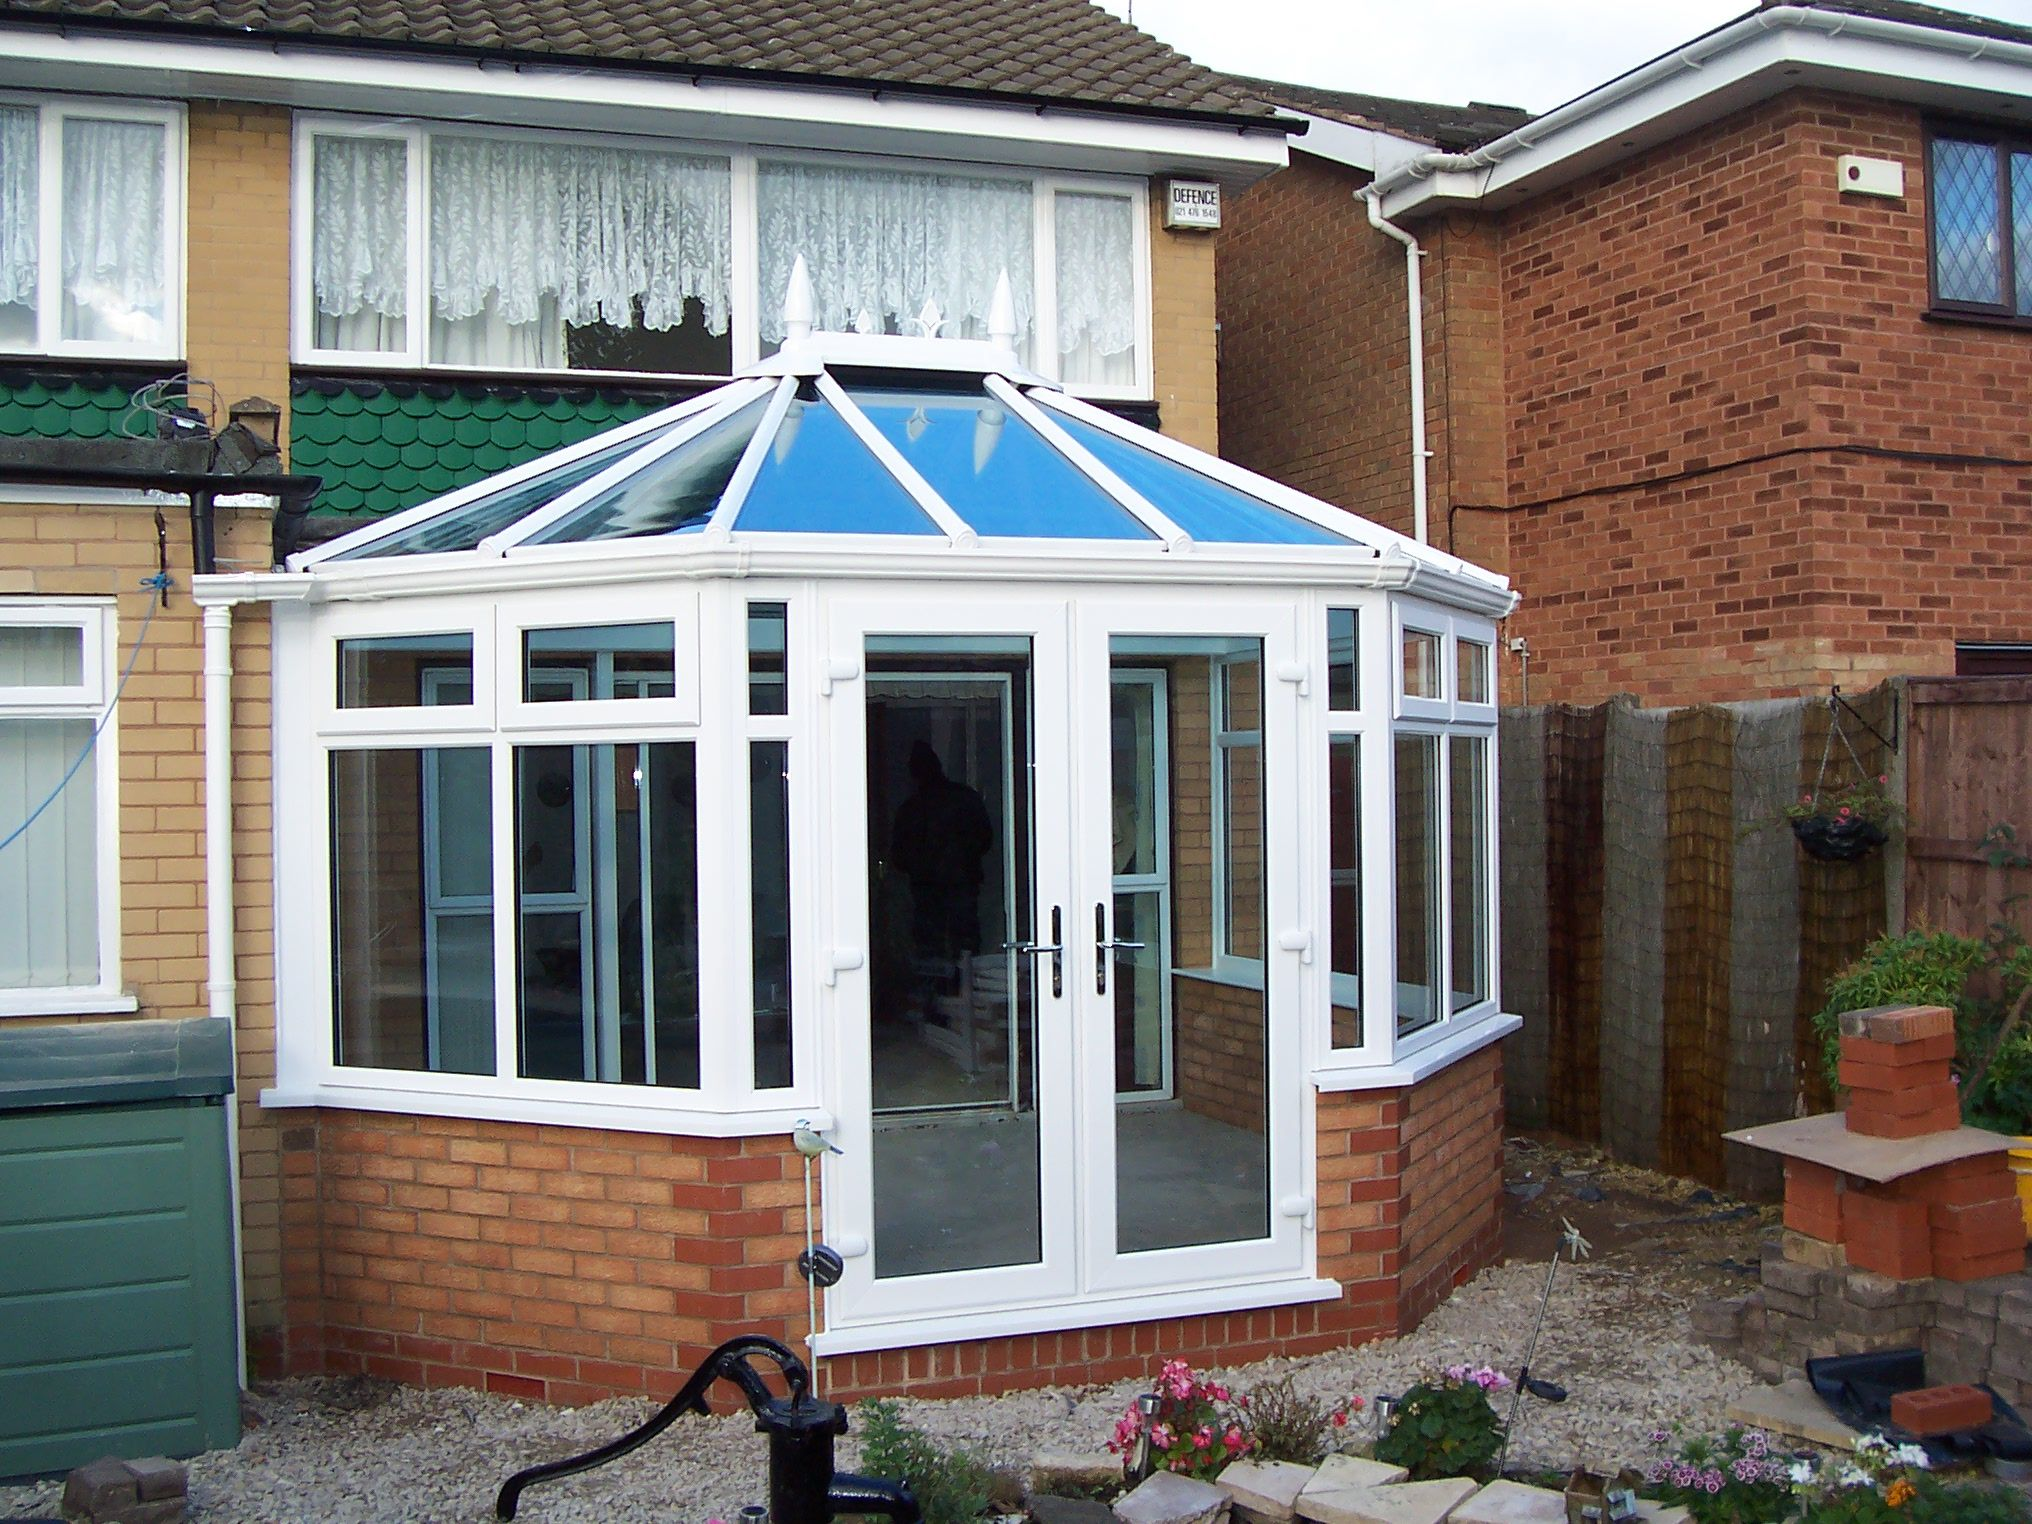 Victorian Conservatories Small Http Www Finesse Windows Co Uk Conservatories Php Garden Room Extensions Conservatory Dining Room House Extension Plans